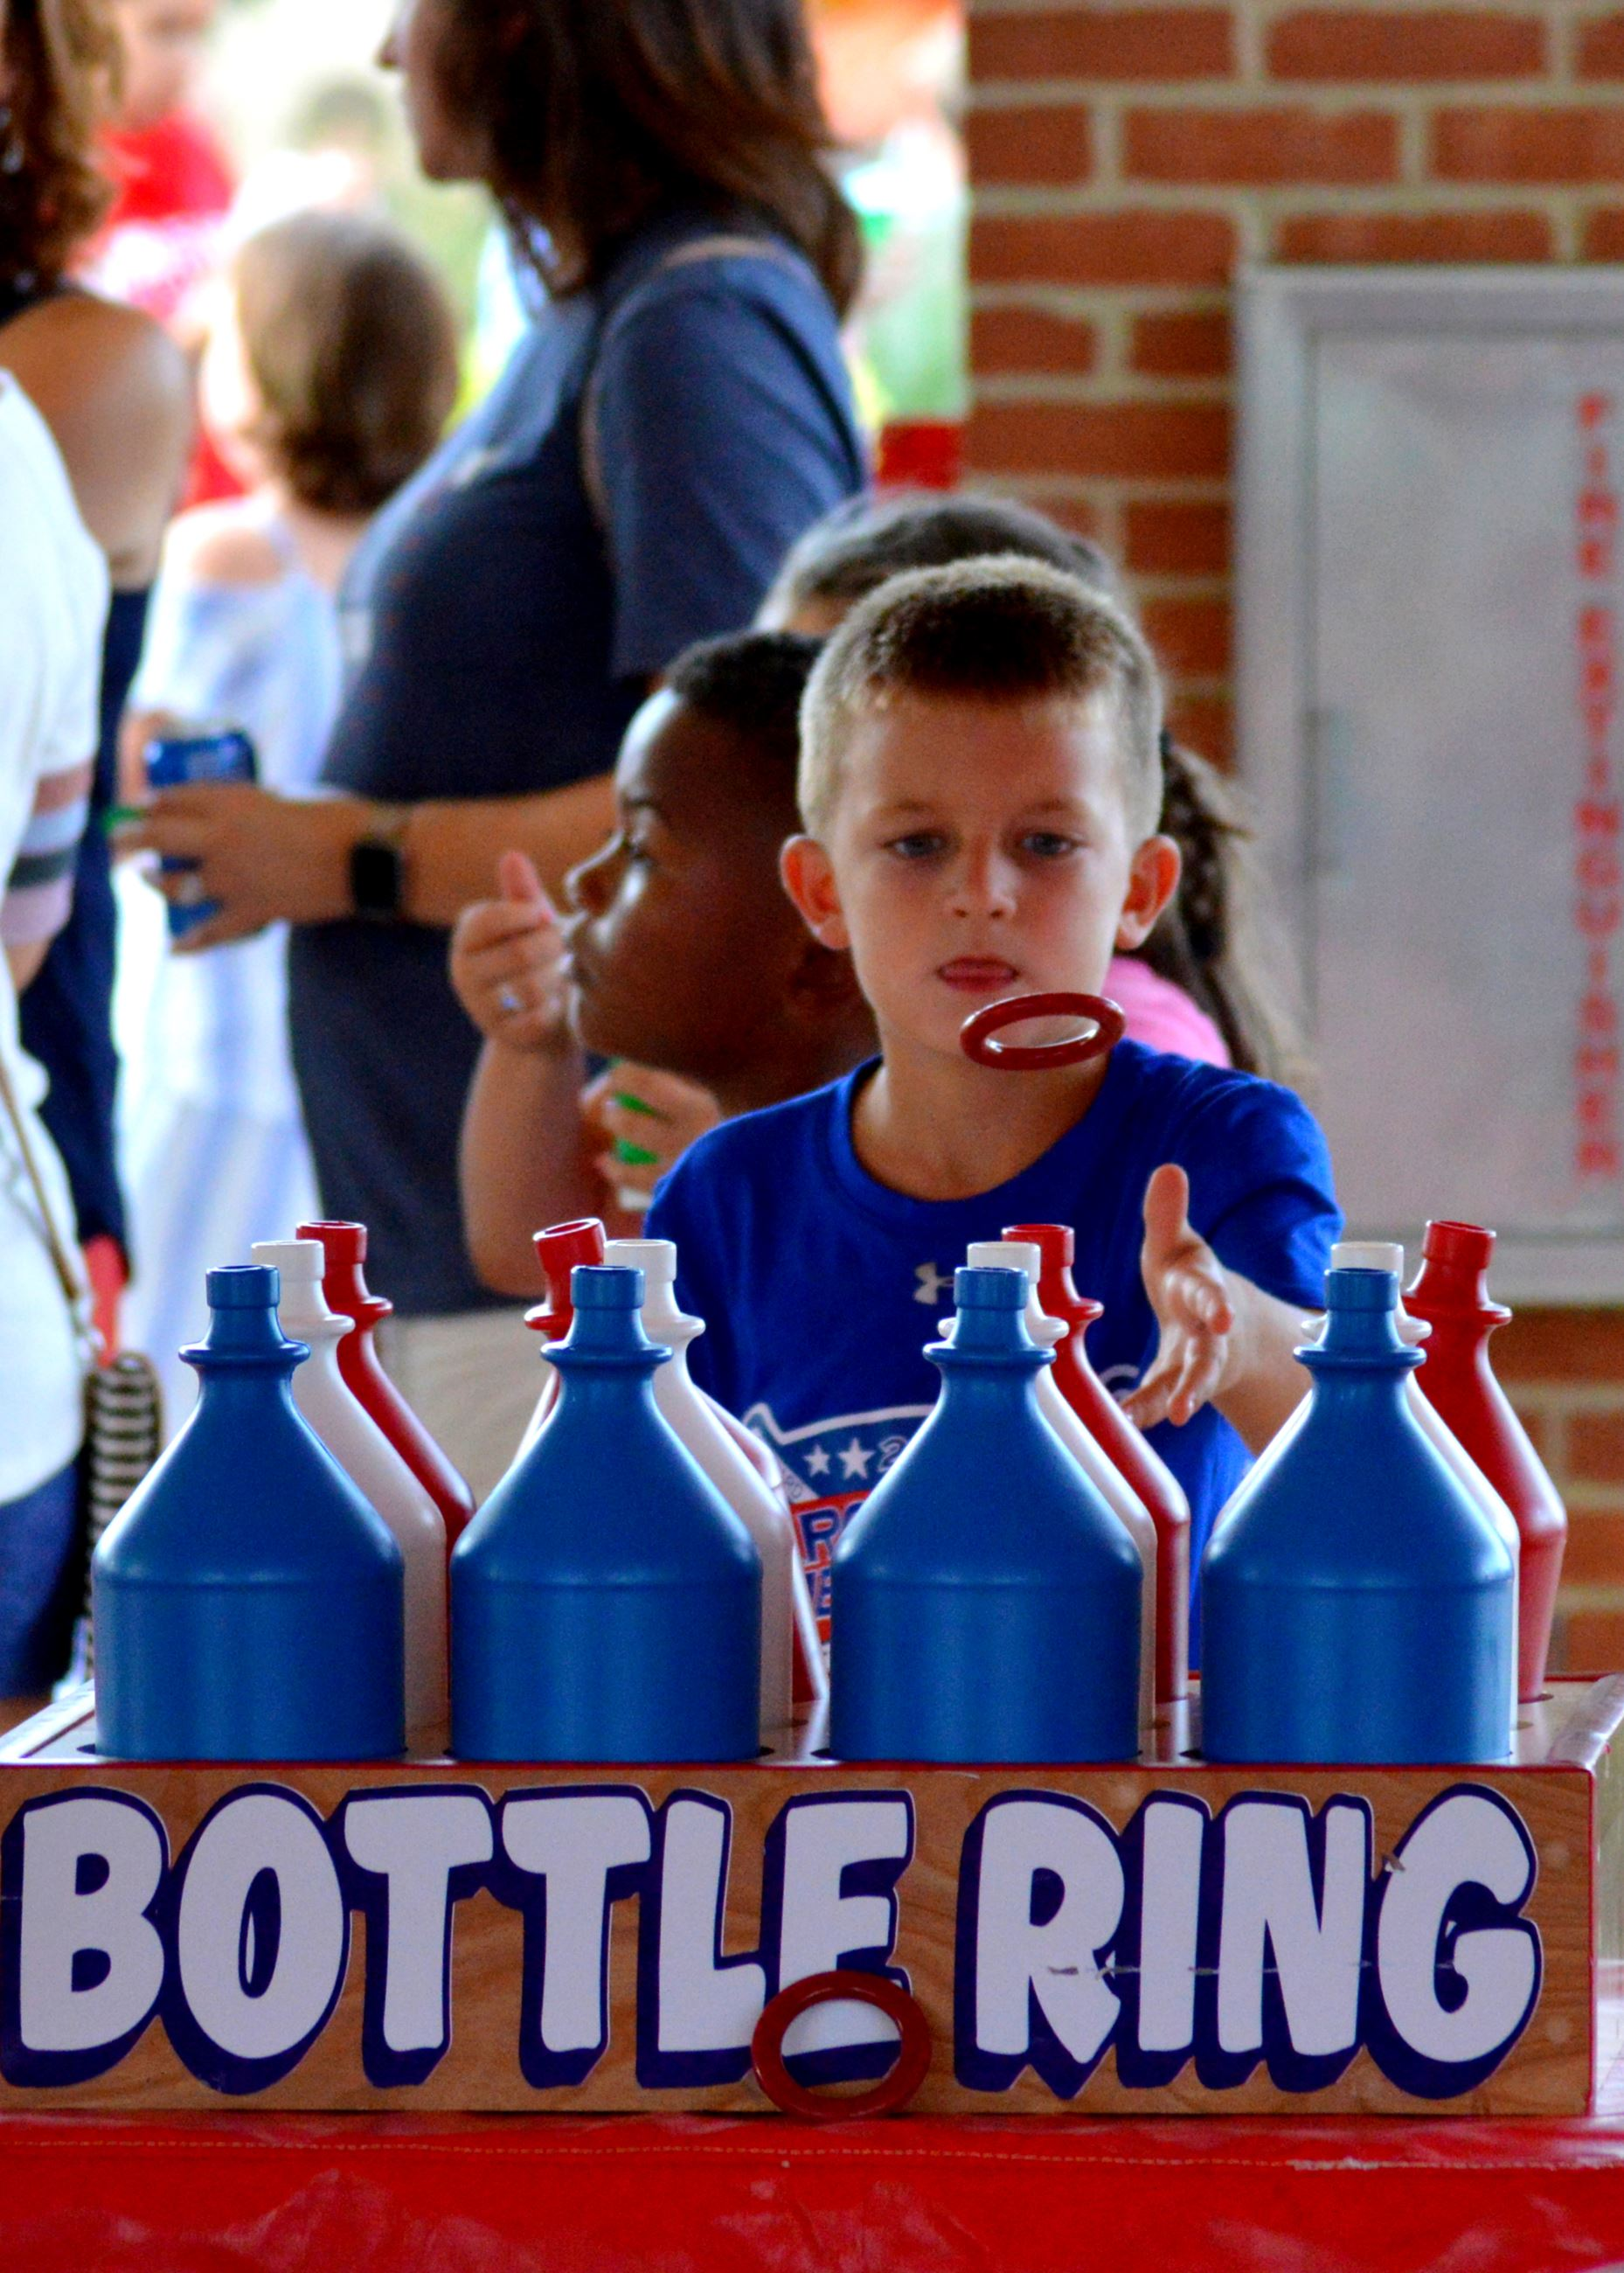 Boy tossing rings onto bottles